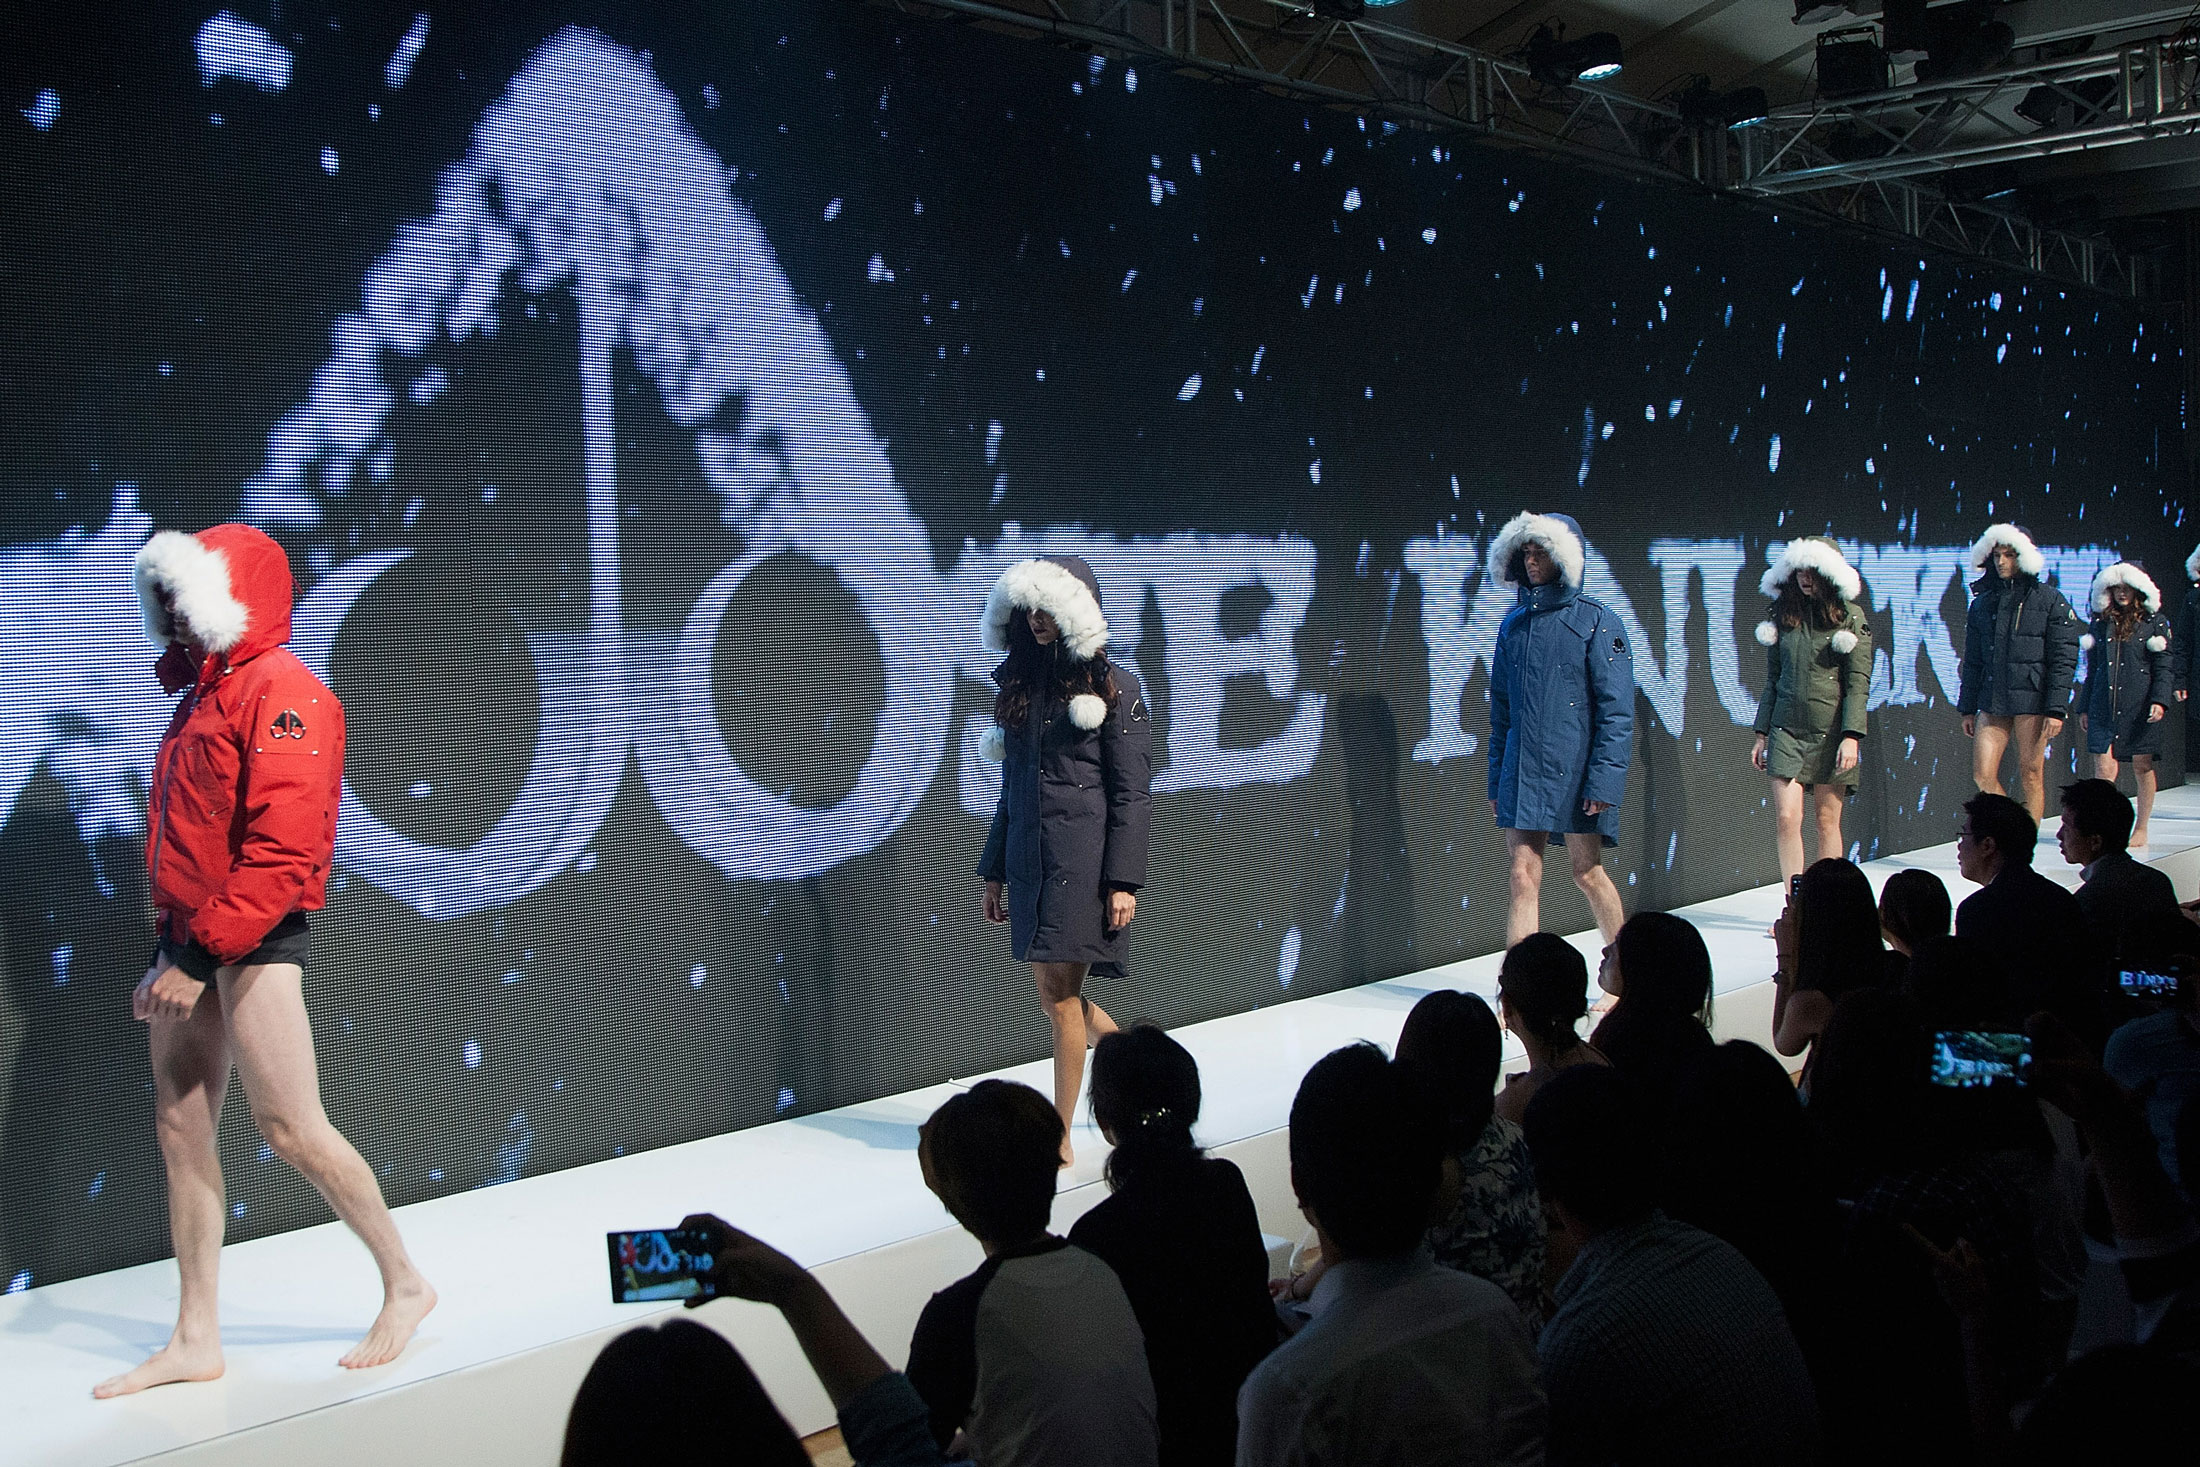 fc0f2ad76 Moose Knuckles Is Taking Aim at Canada Goose - Bloomberg